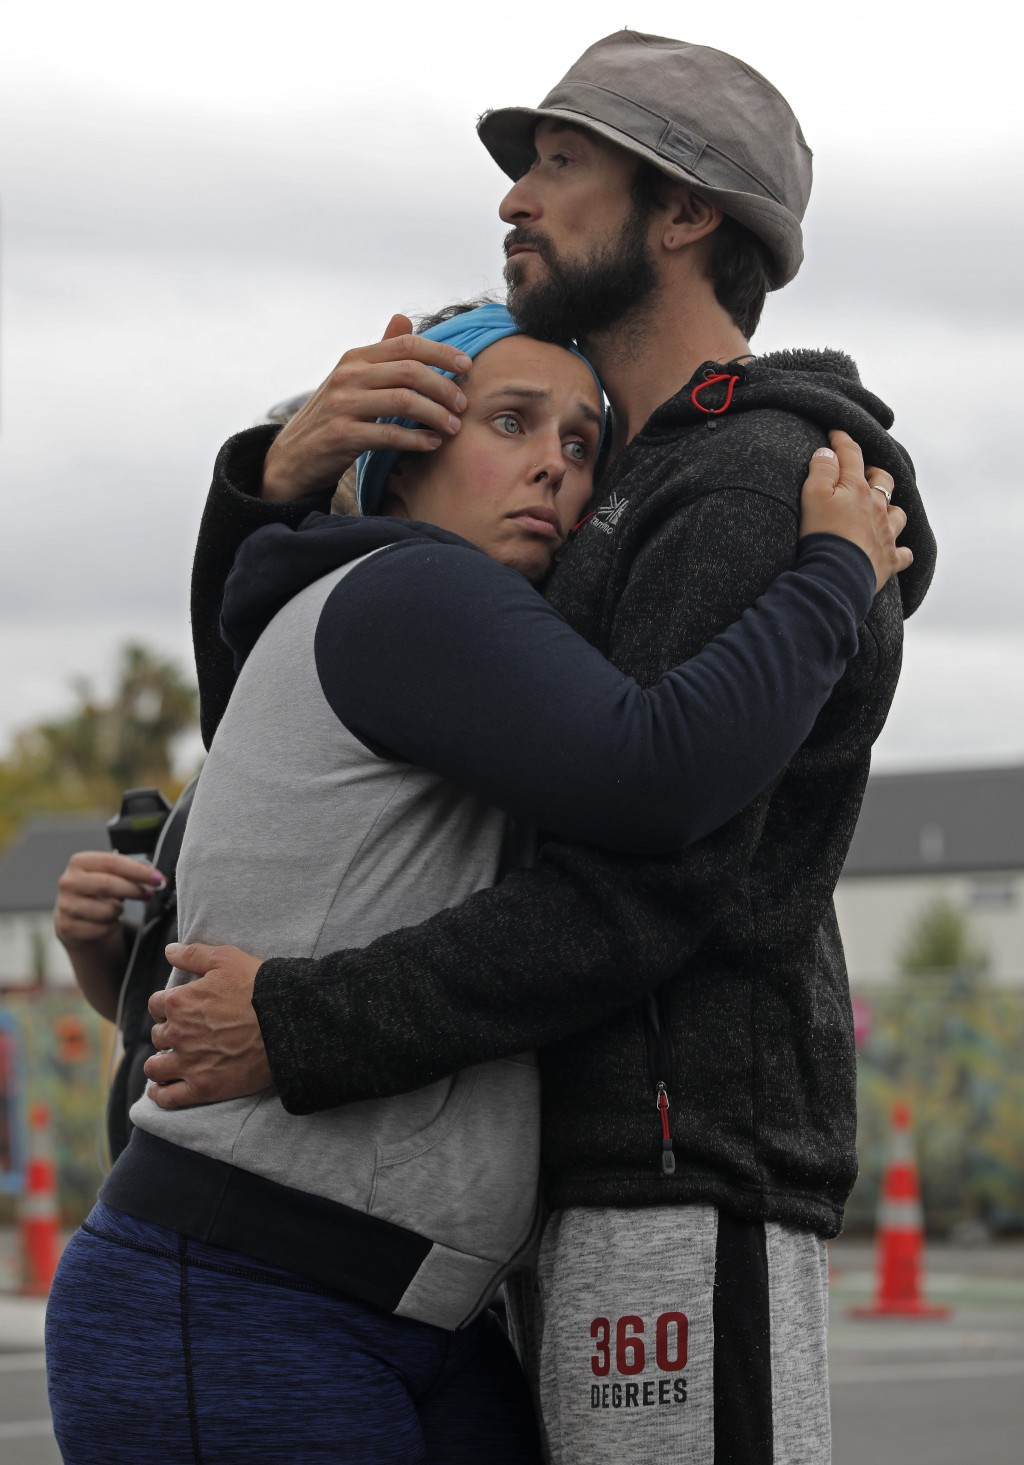 Mourners hug as they pay their respects at a memorial near the Masjid Al Noor mosque in Christchurch, New Zealand, Saturday, March 16, 2019, near wher